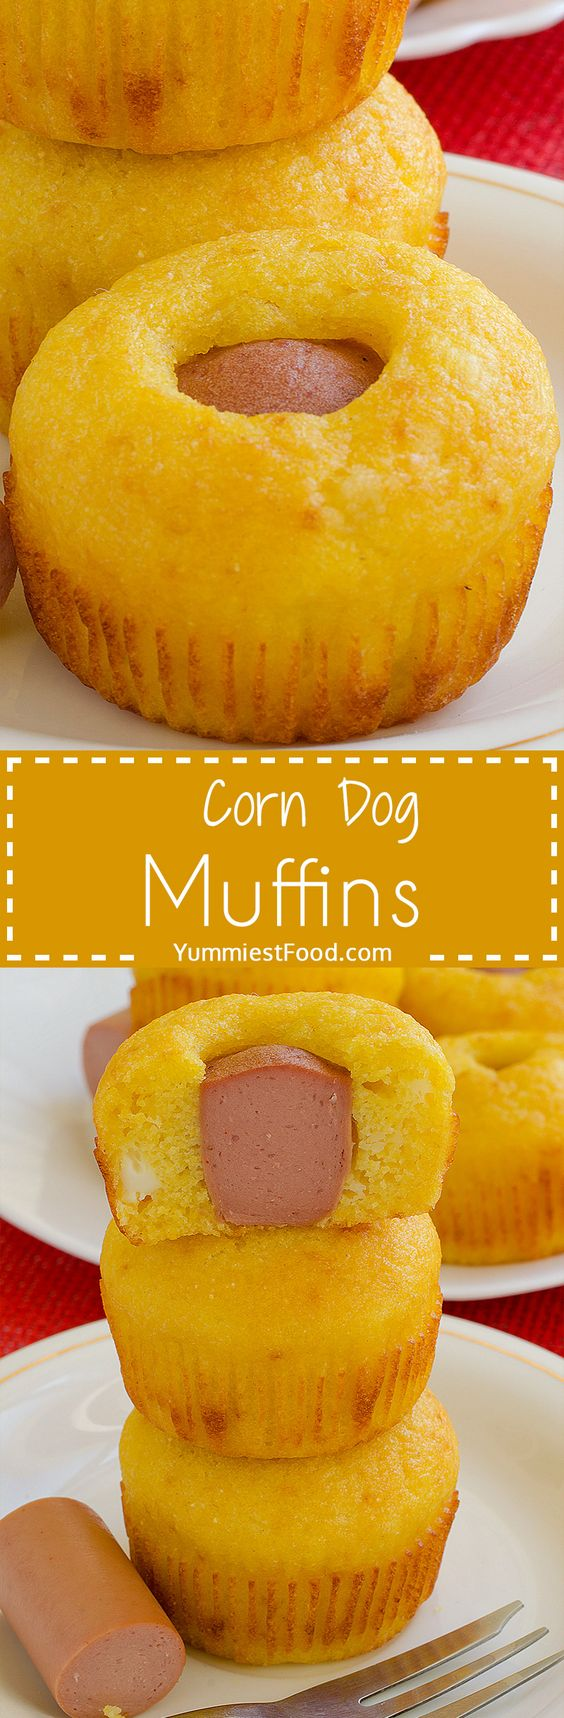 Corn Dog Muffins - very easy and quick to make! You can also add ingredients you like the most and your family will enjoy in this Corn Dog Muffins which is perfect for breakfast!